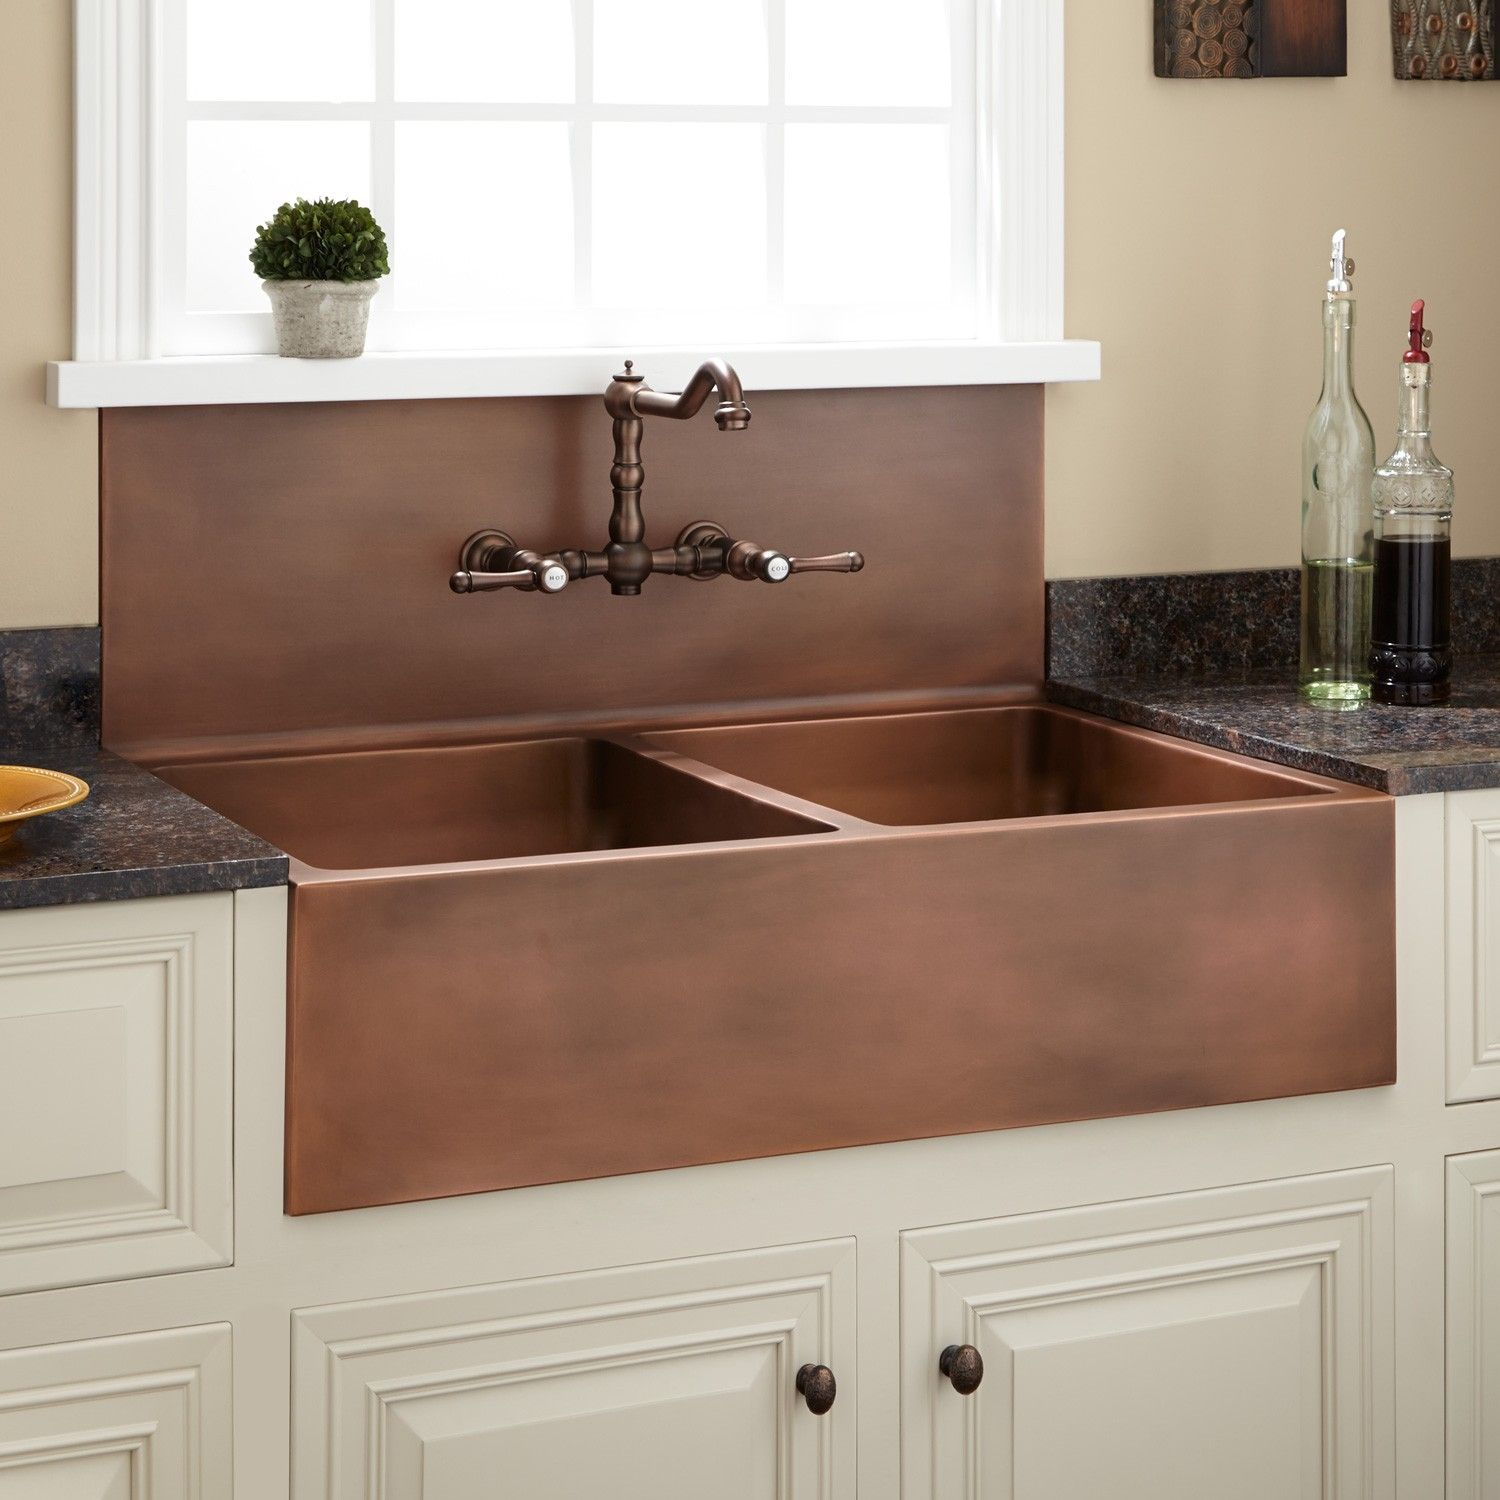 Double Bowl Farmhouse Sink With High Back Splash Antique